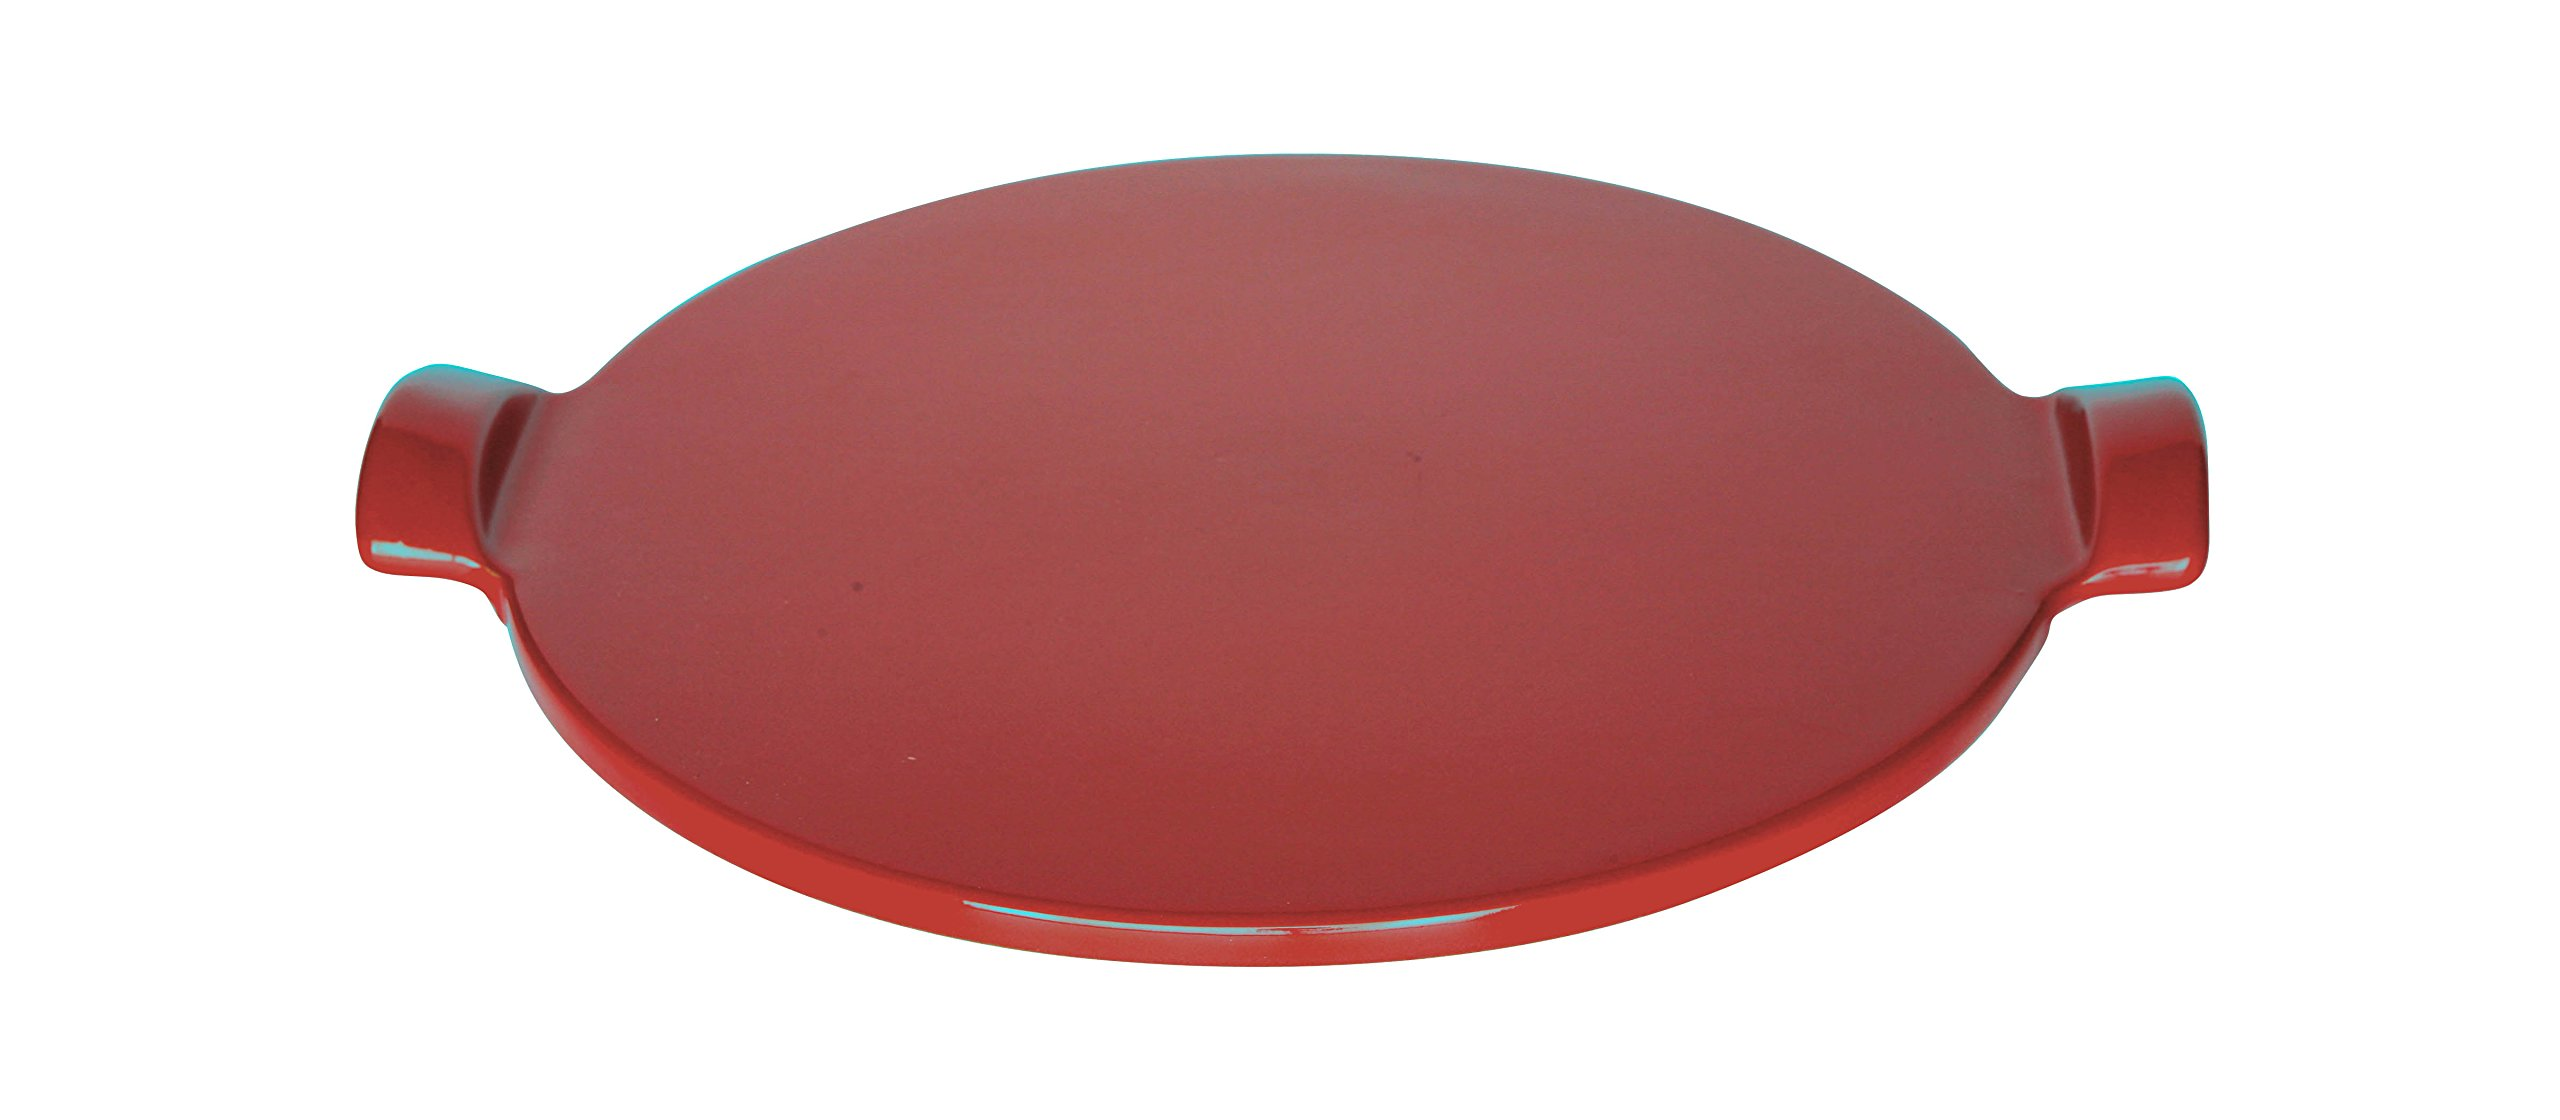 Emile Henry Made In France Flame Individual Pizza Stone, 10'', Burgundy by Emile Henry